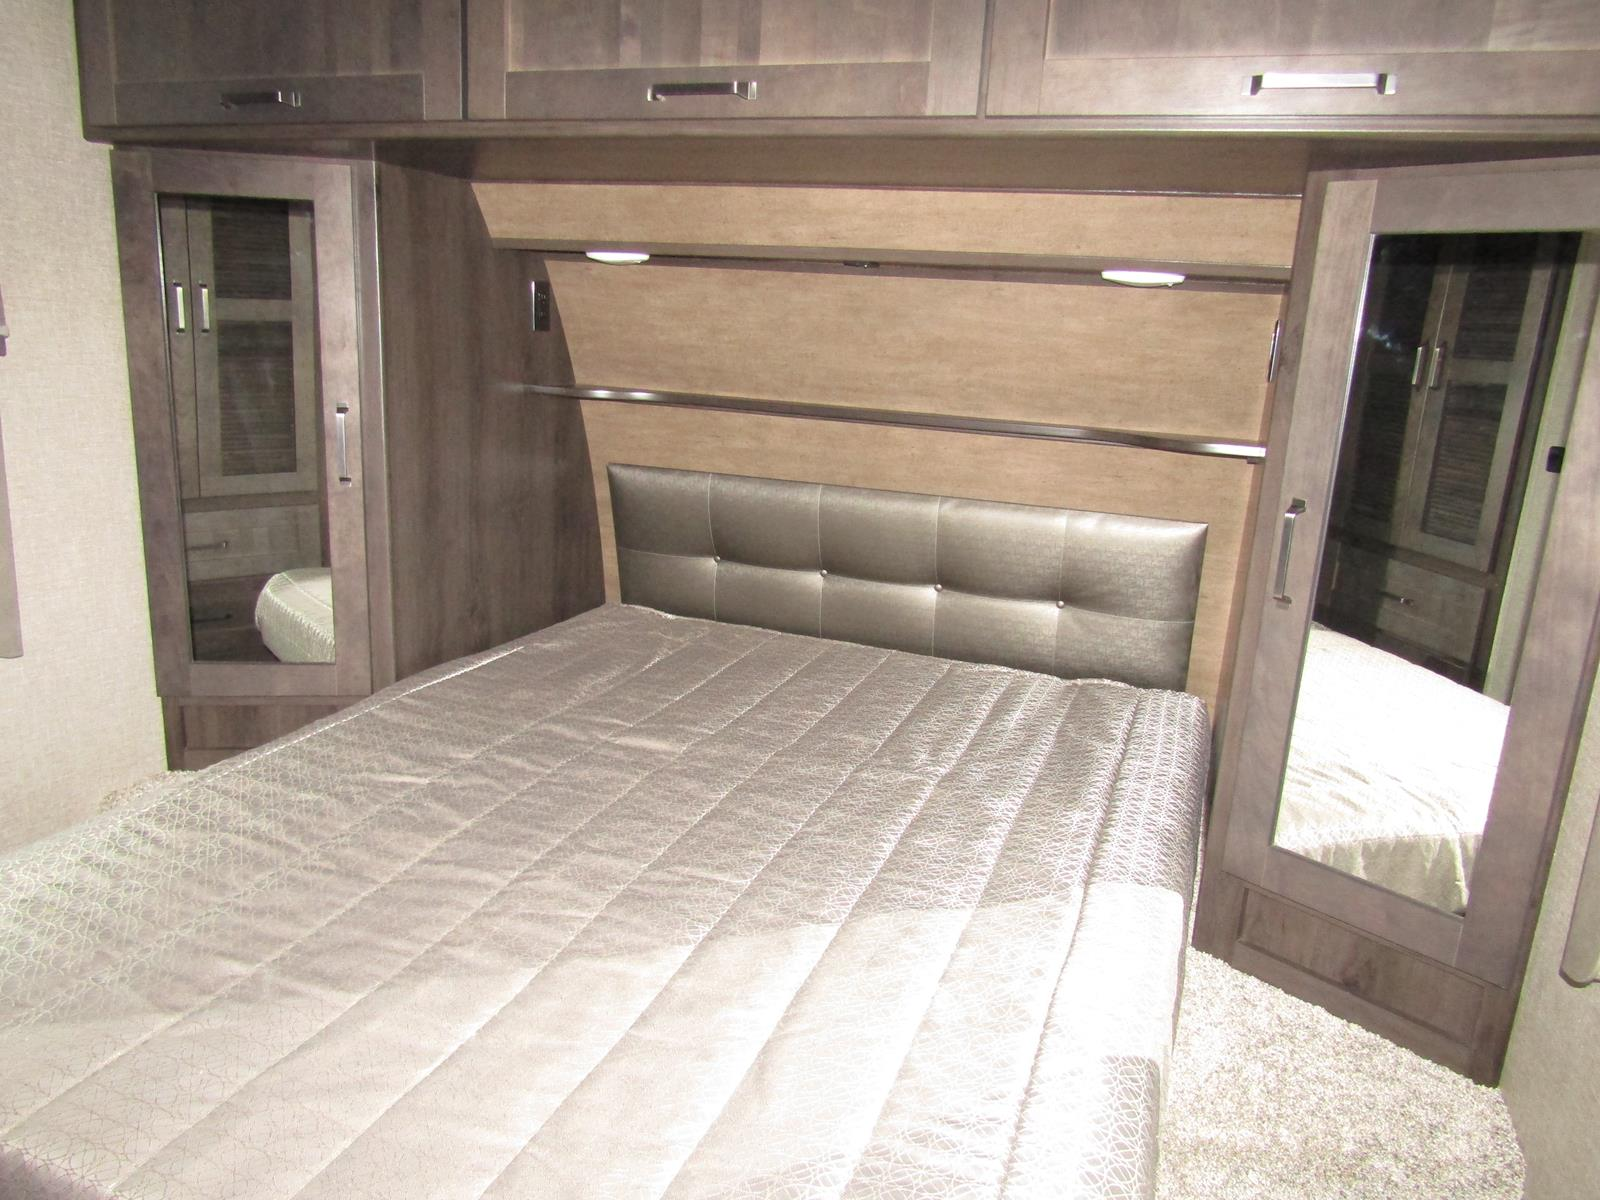 New 2020 Grand Design Reflection Travel Trailers 297rsts